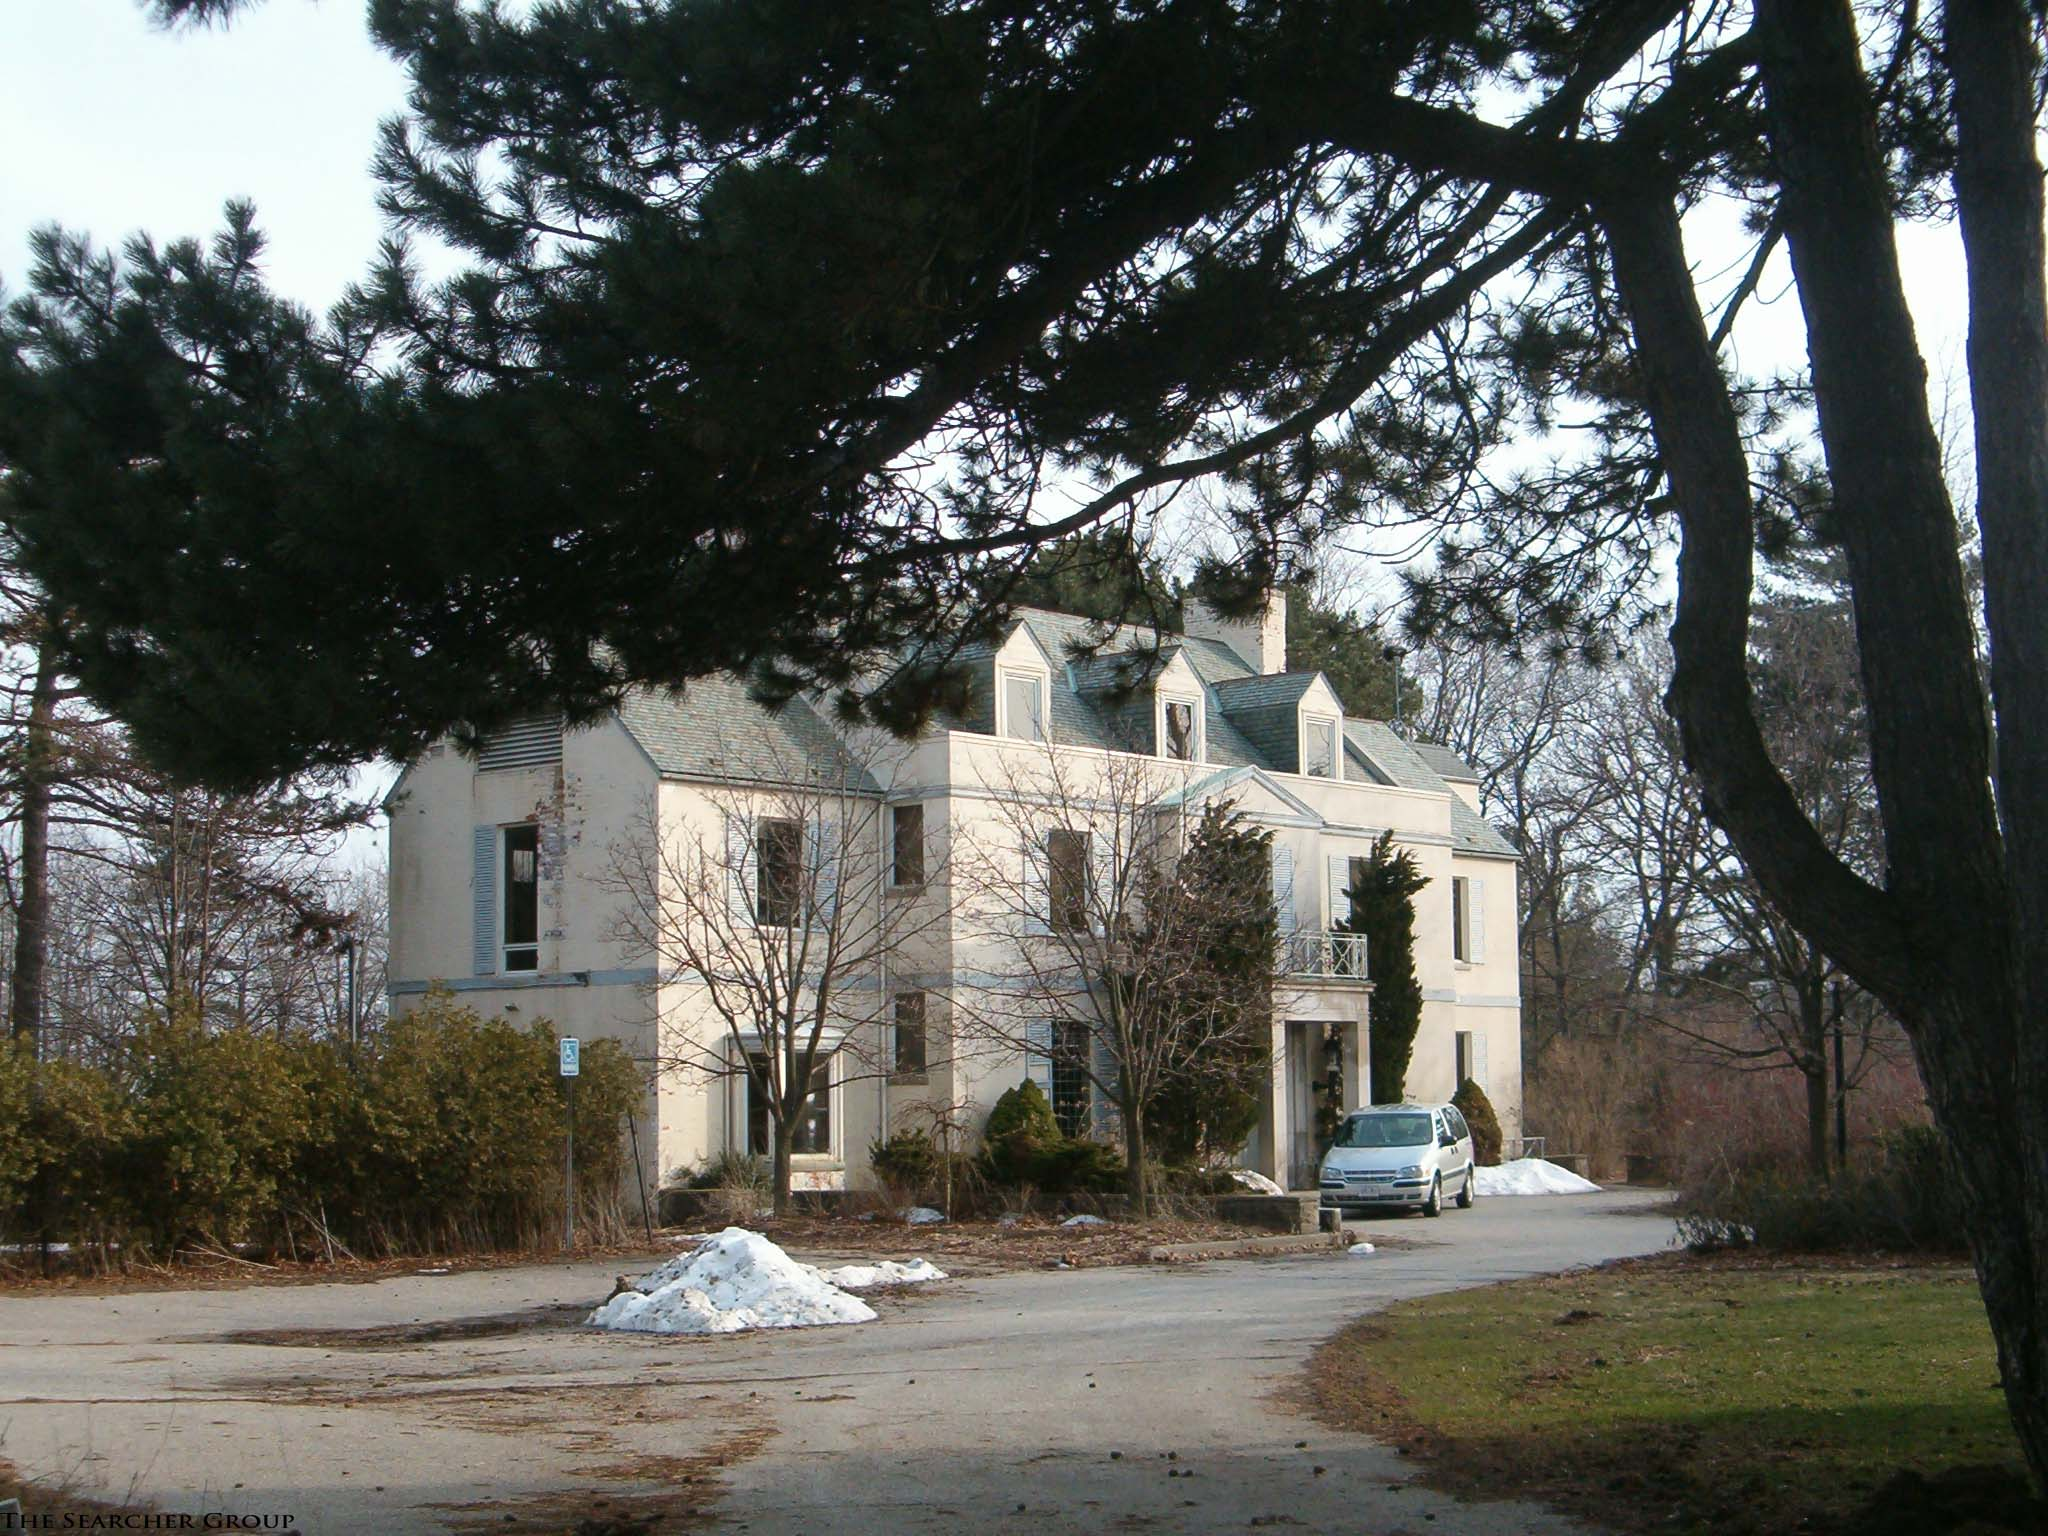 photo of Fusion house, large white house with driveway in front